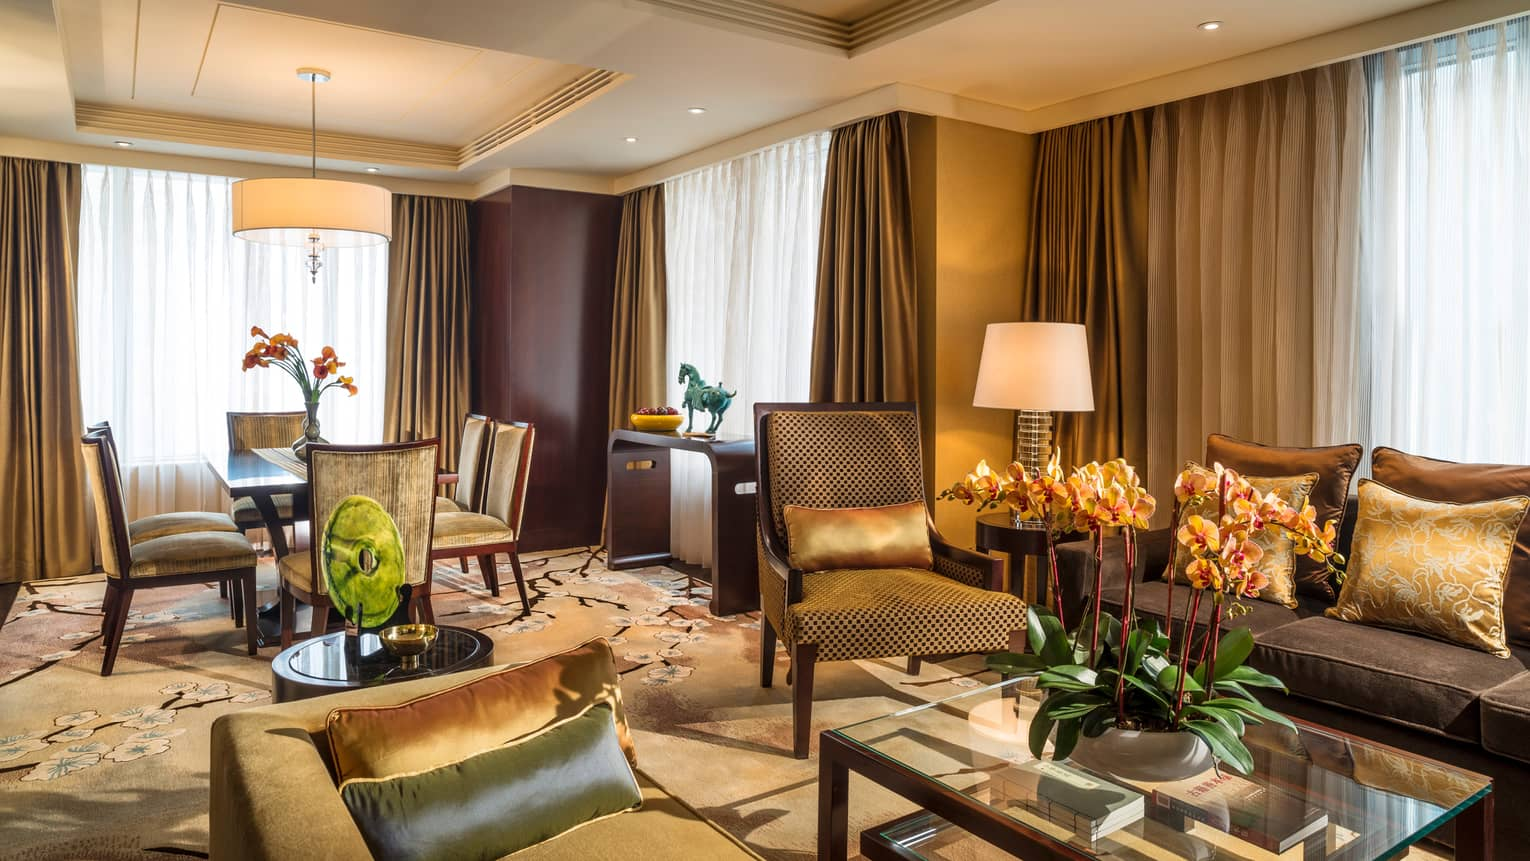 Chairman Suite living room with gold and green sofas and accent pillows, carpet, dining table, curtains on corner windows